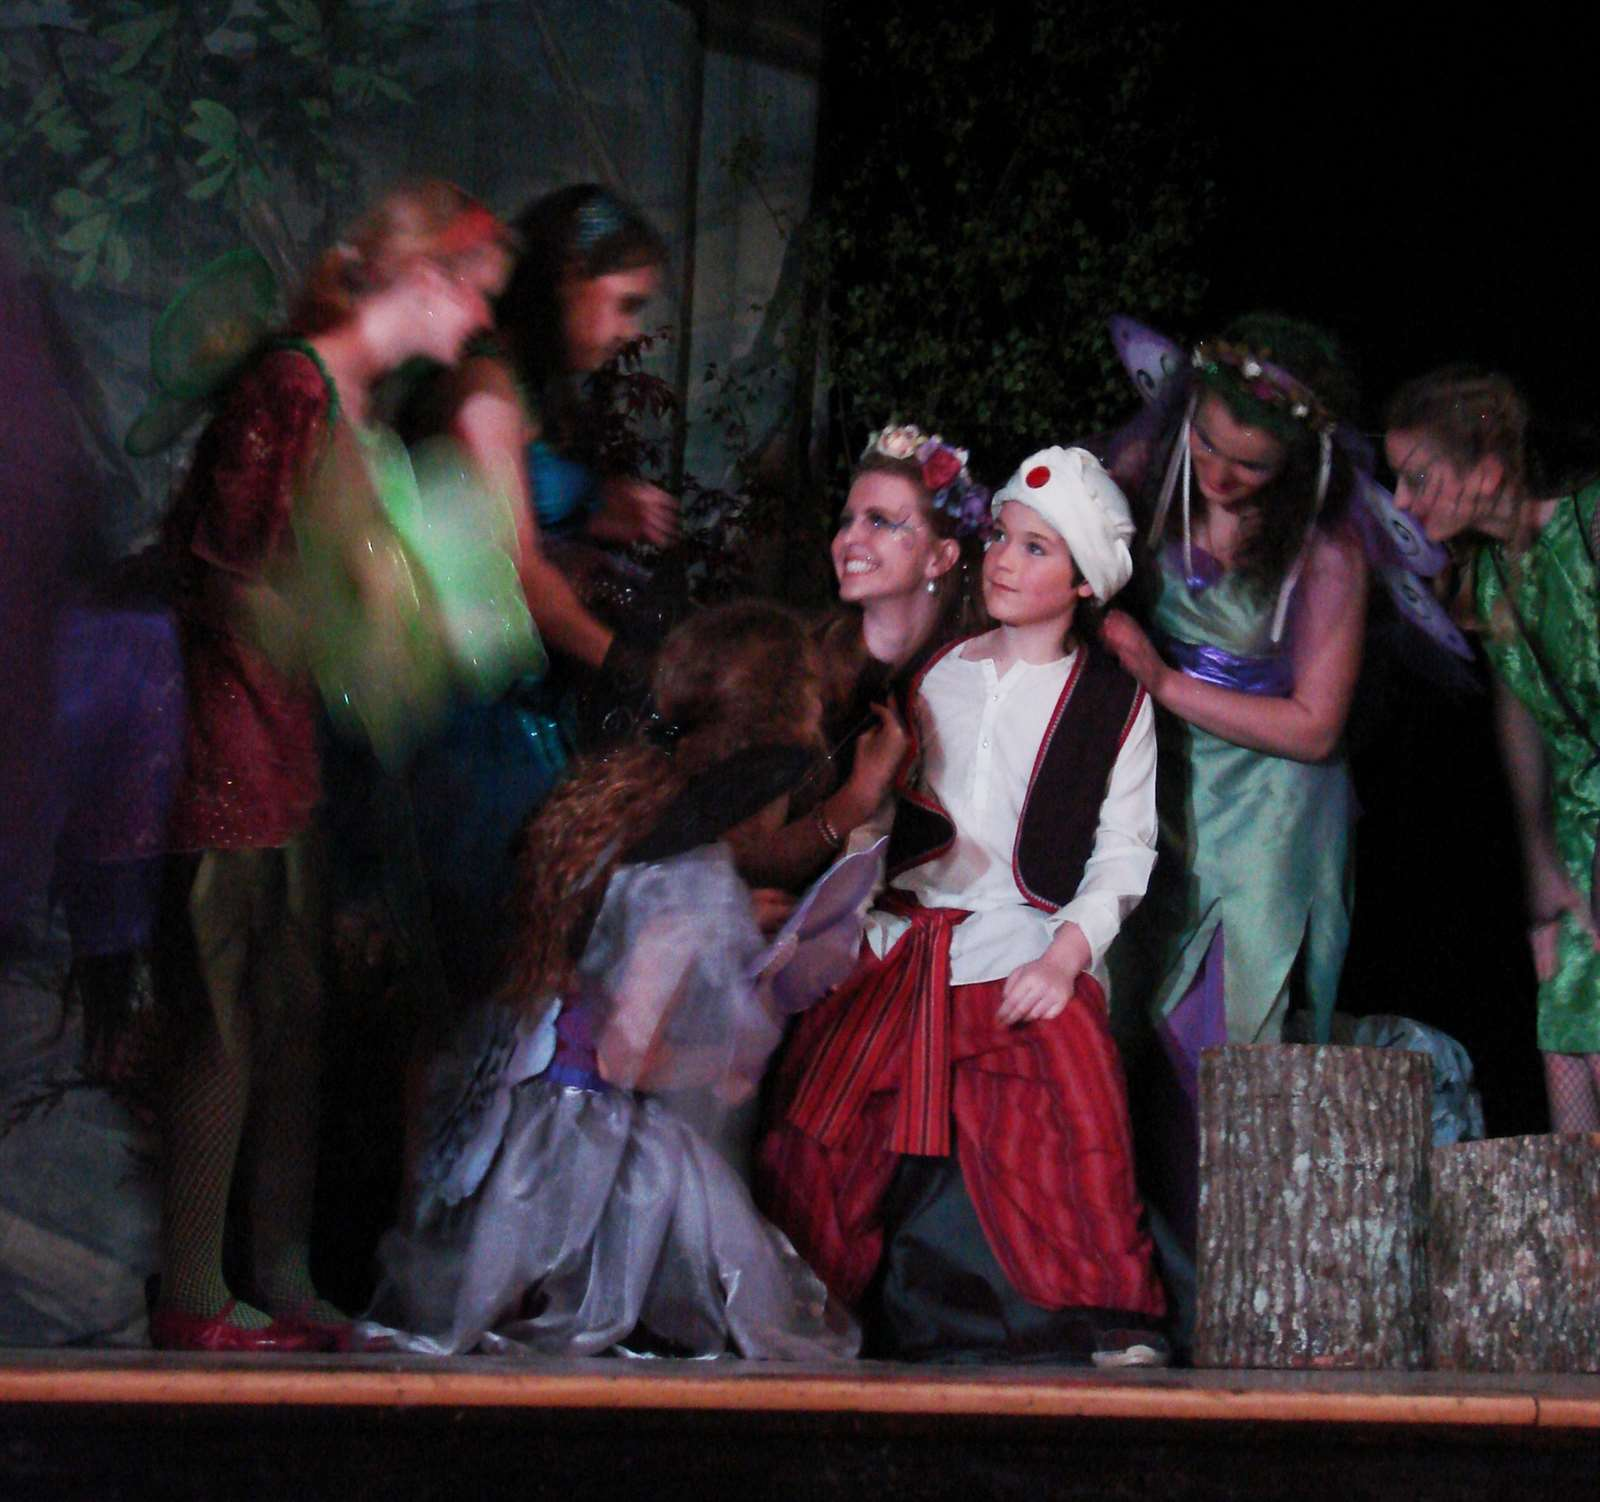 midsummers nights dream Lysander loves hermia, and hermia loves lysander helena loves demetrius demetrius used to love helena but now loves hermia egeus, hermia's father, prefers demetrius as a suitor, and enlists the aid of theseus, the duke.